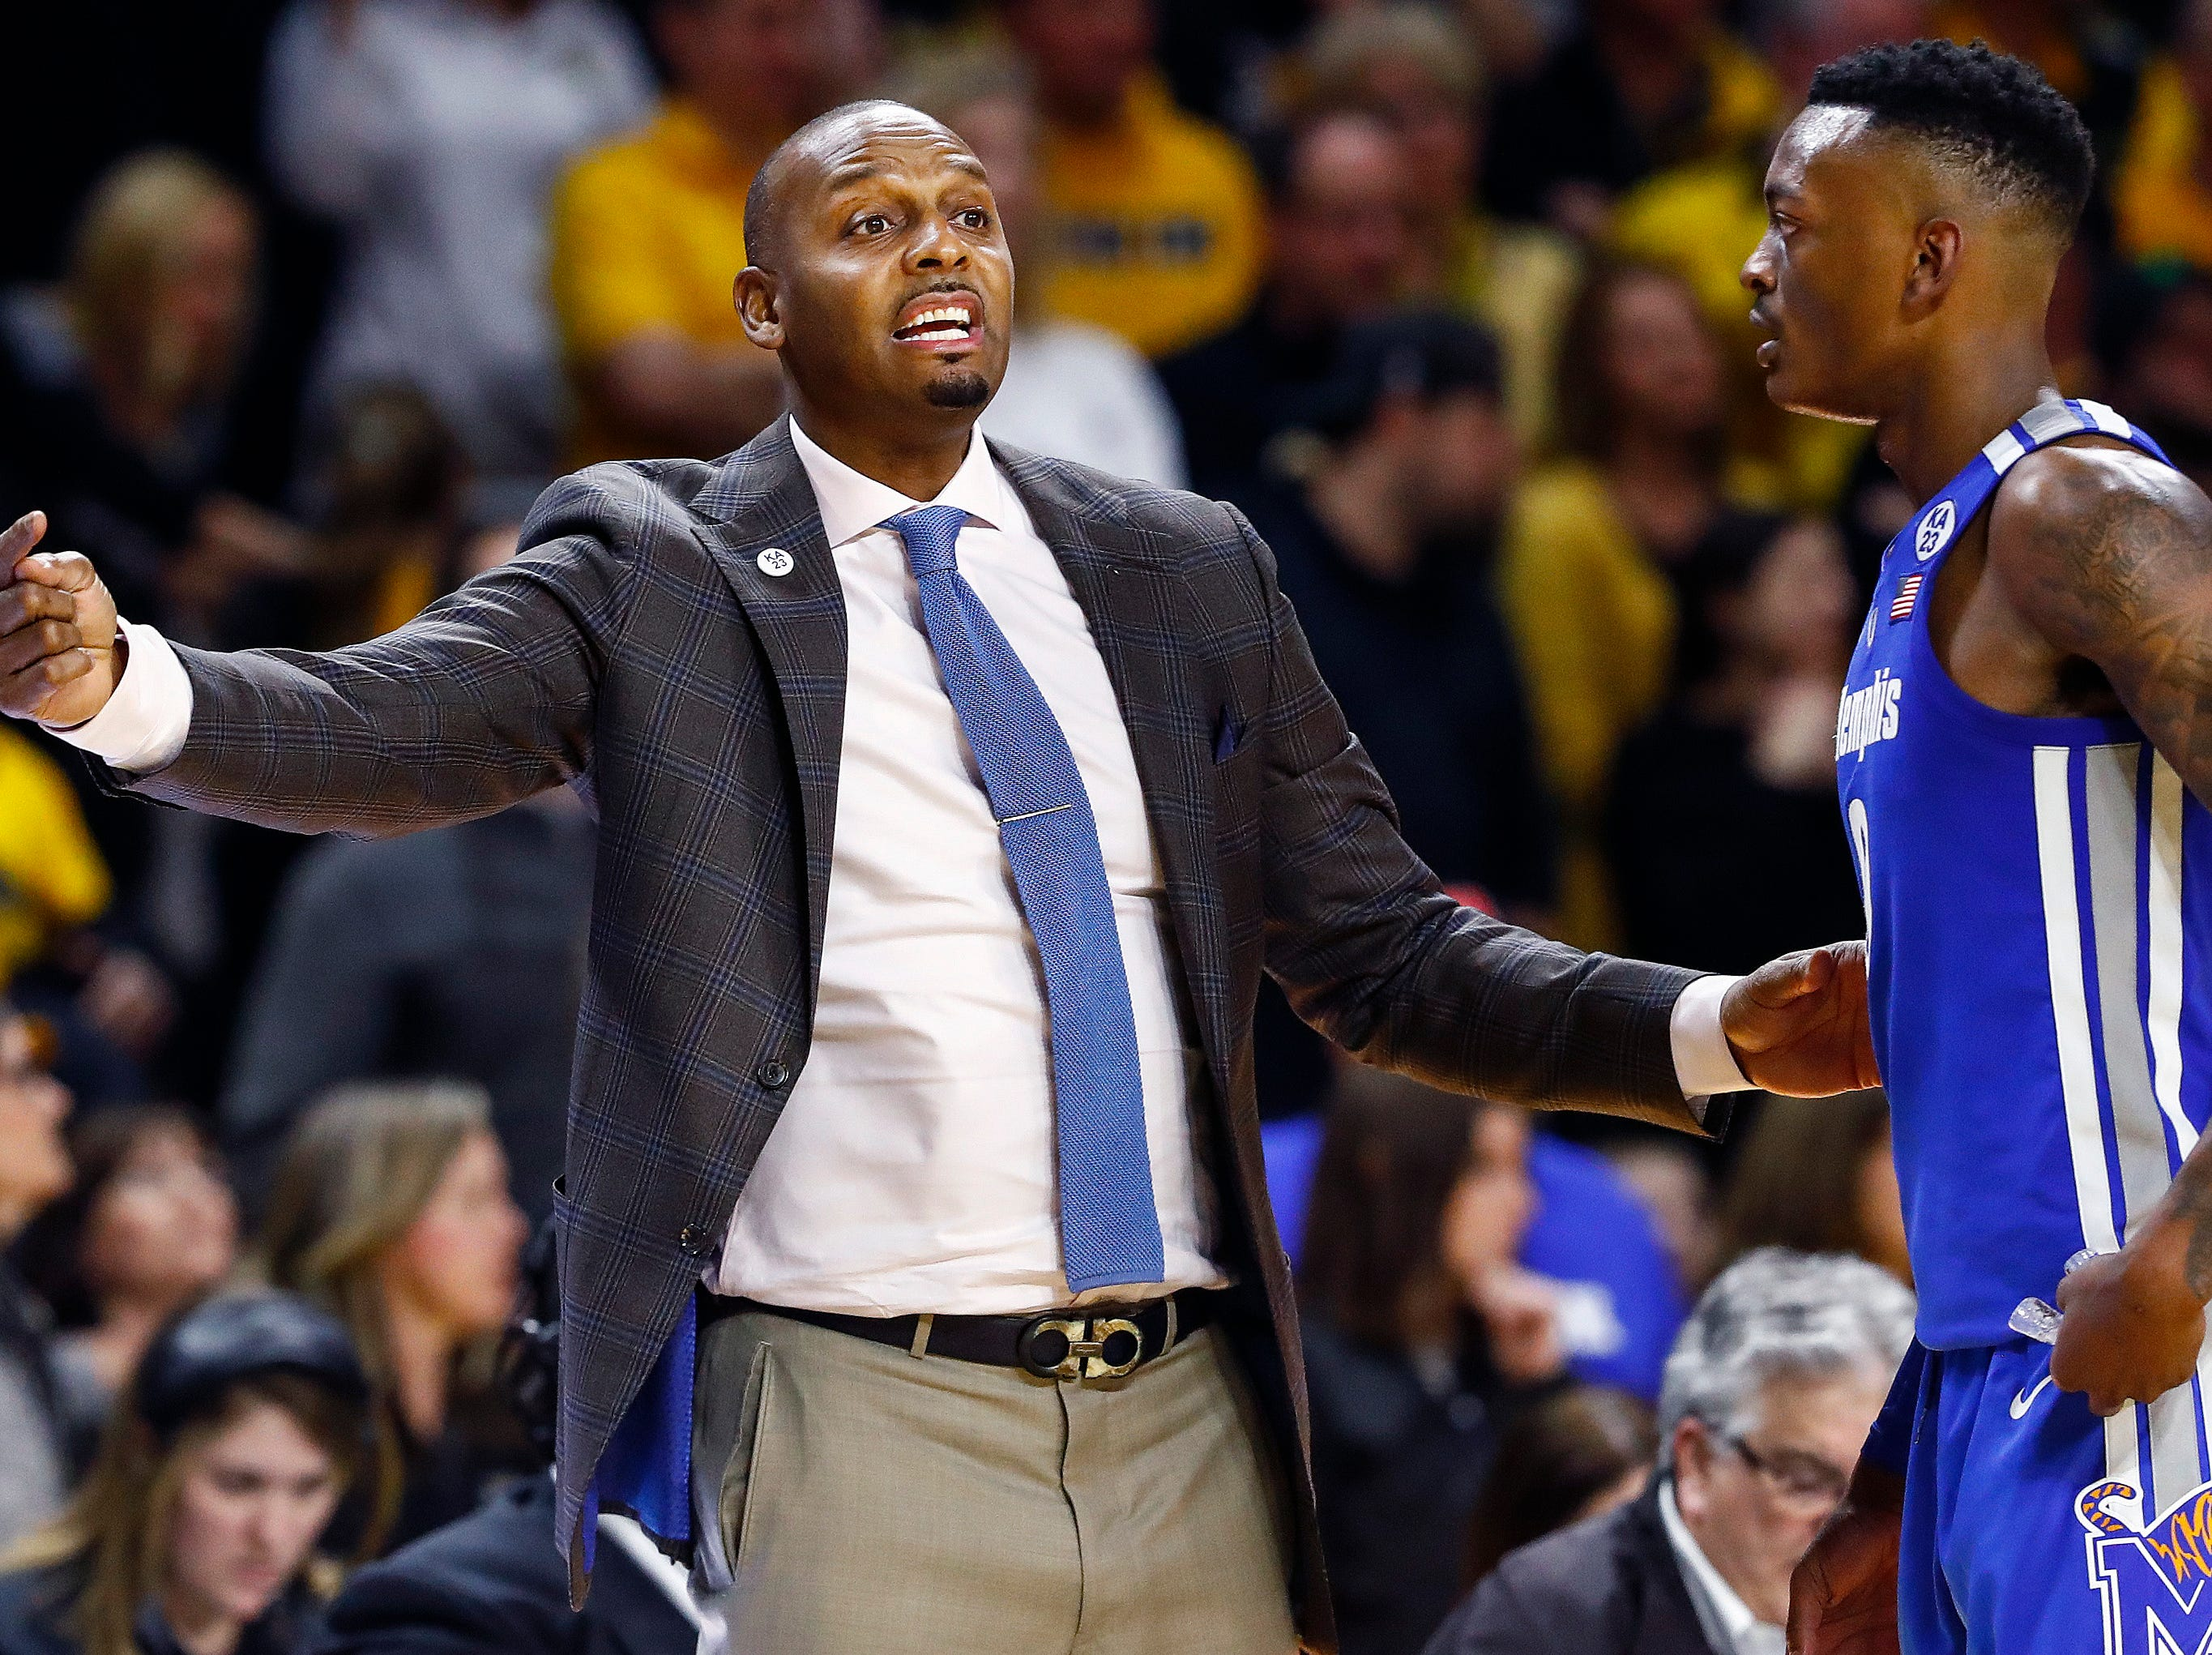 Memphis head coach Penny Hardaway (left) during action against Wichita State in Wichita, Kansas, Saturday, February 23, 2019.